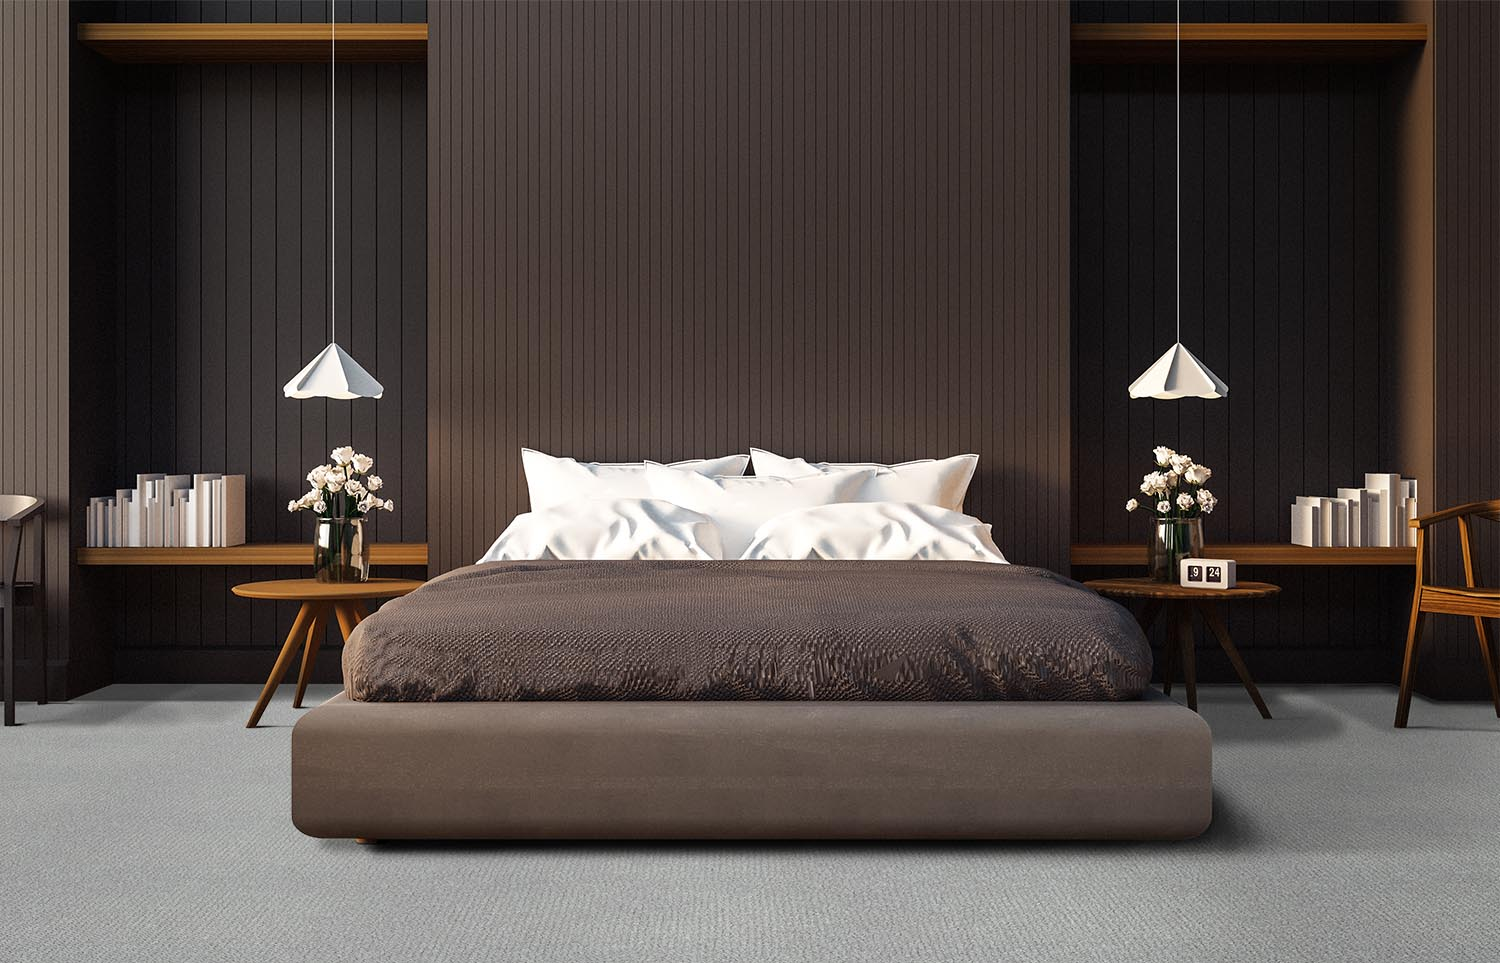 Immerse - All In contemporary bedroom